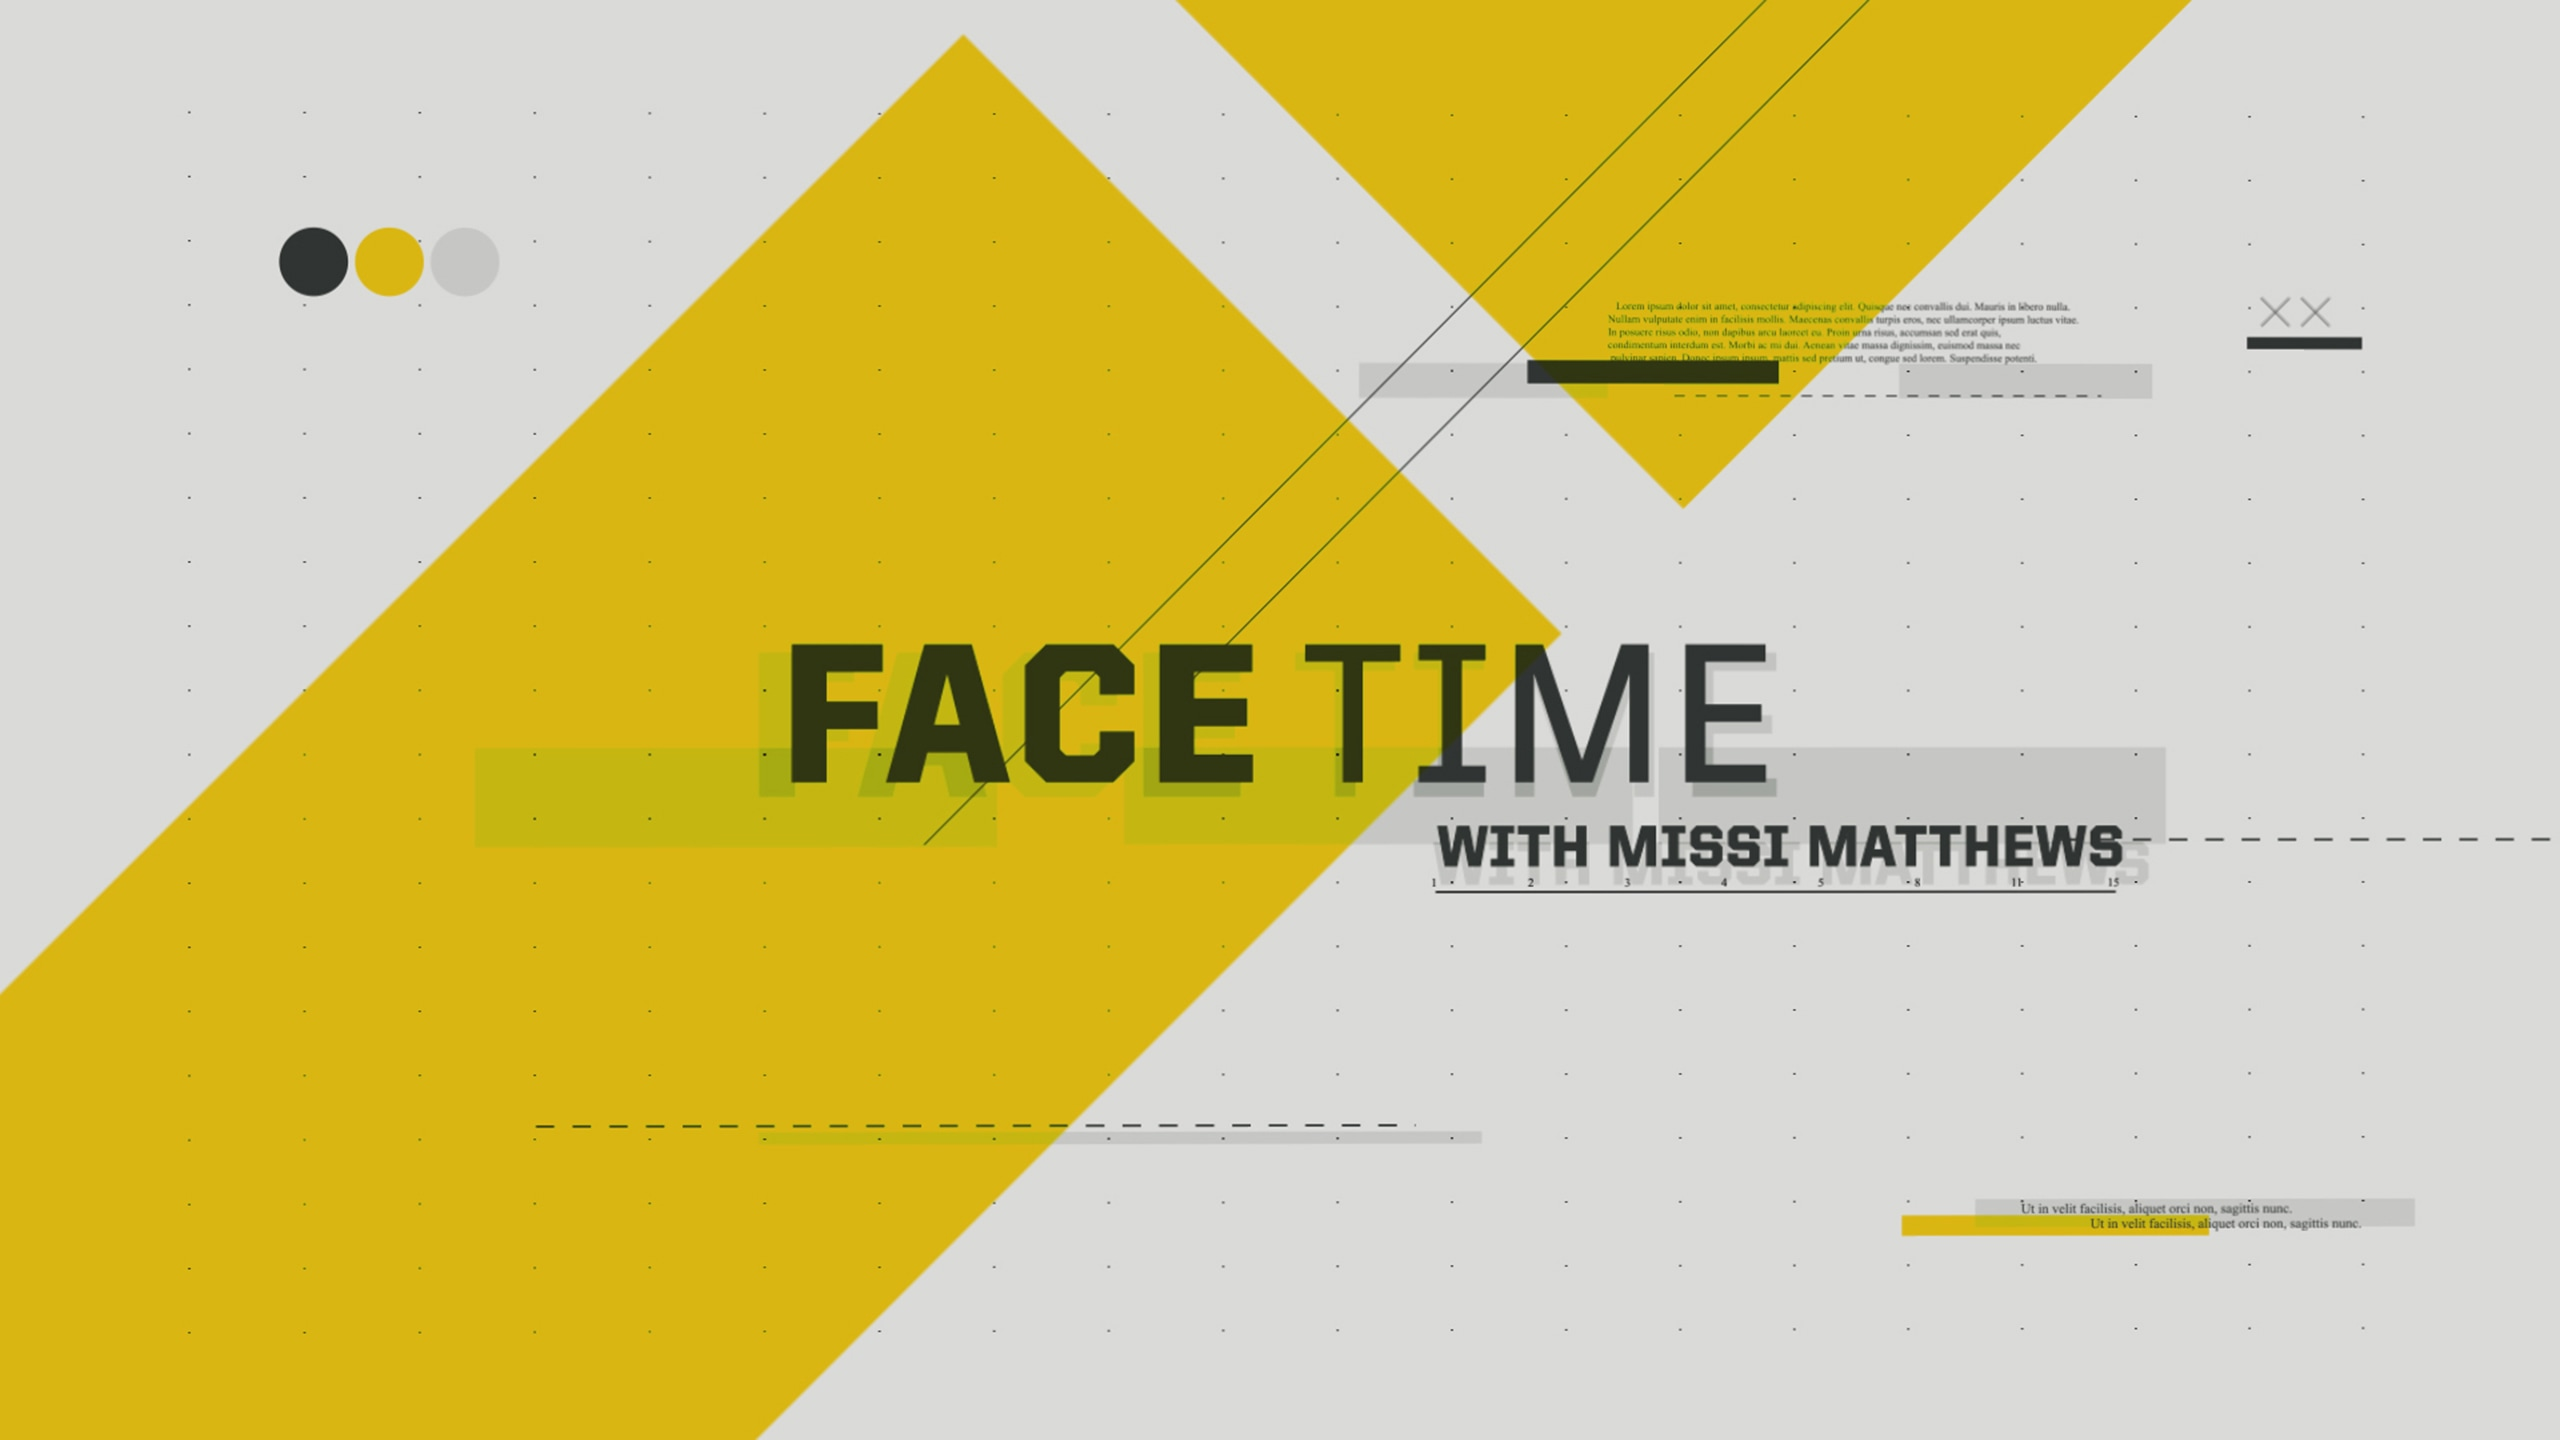 Face Time with Missi Matthews